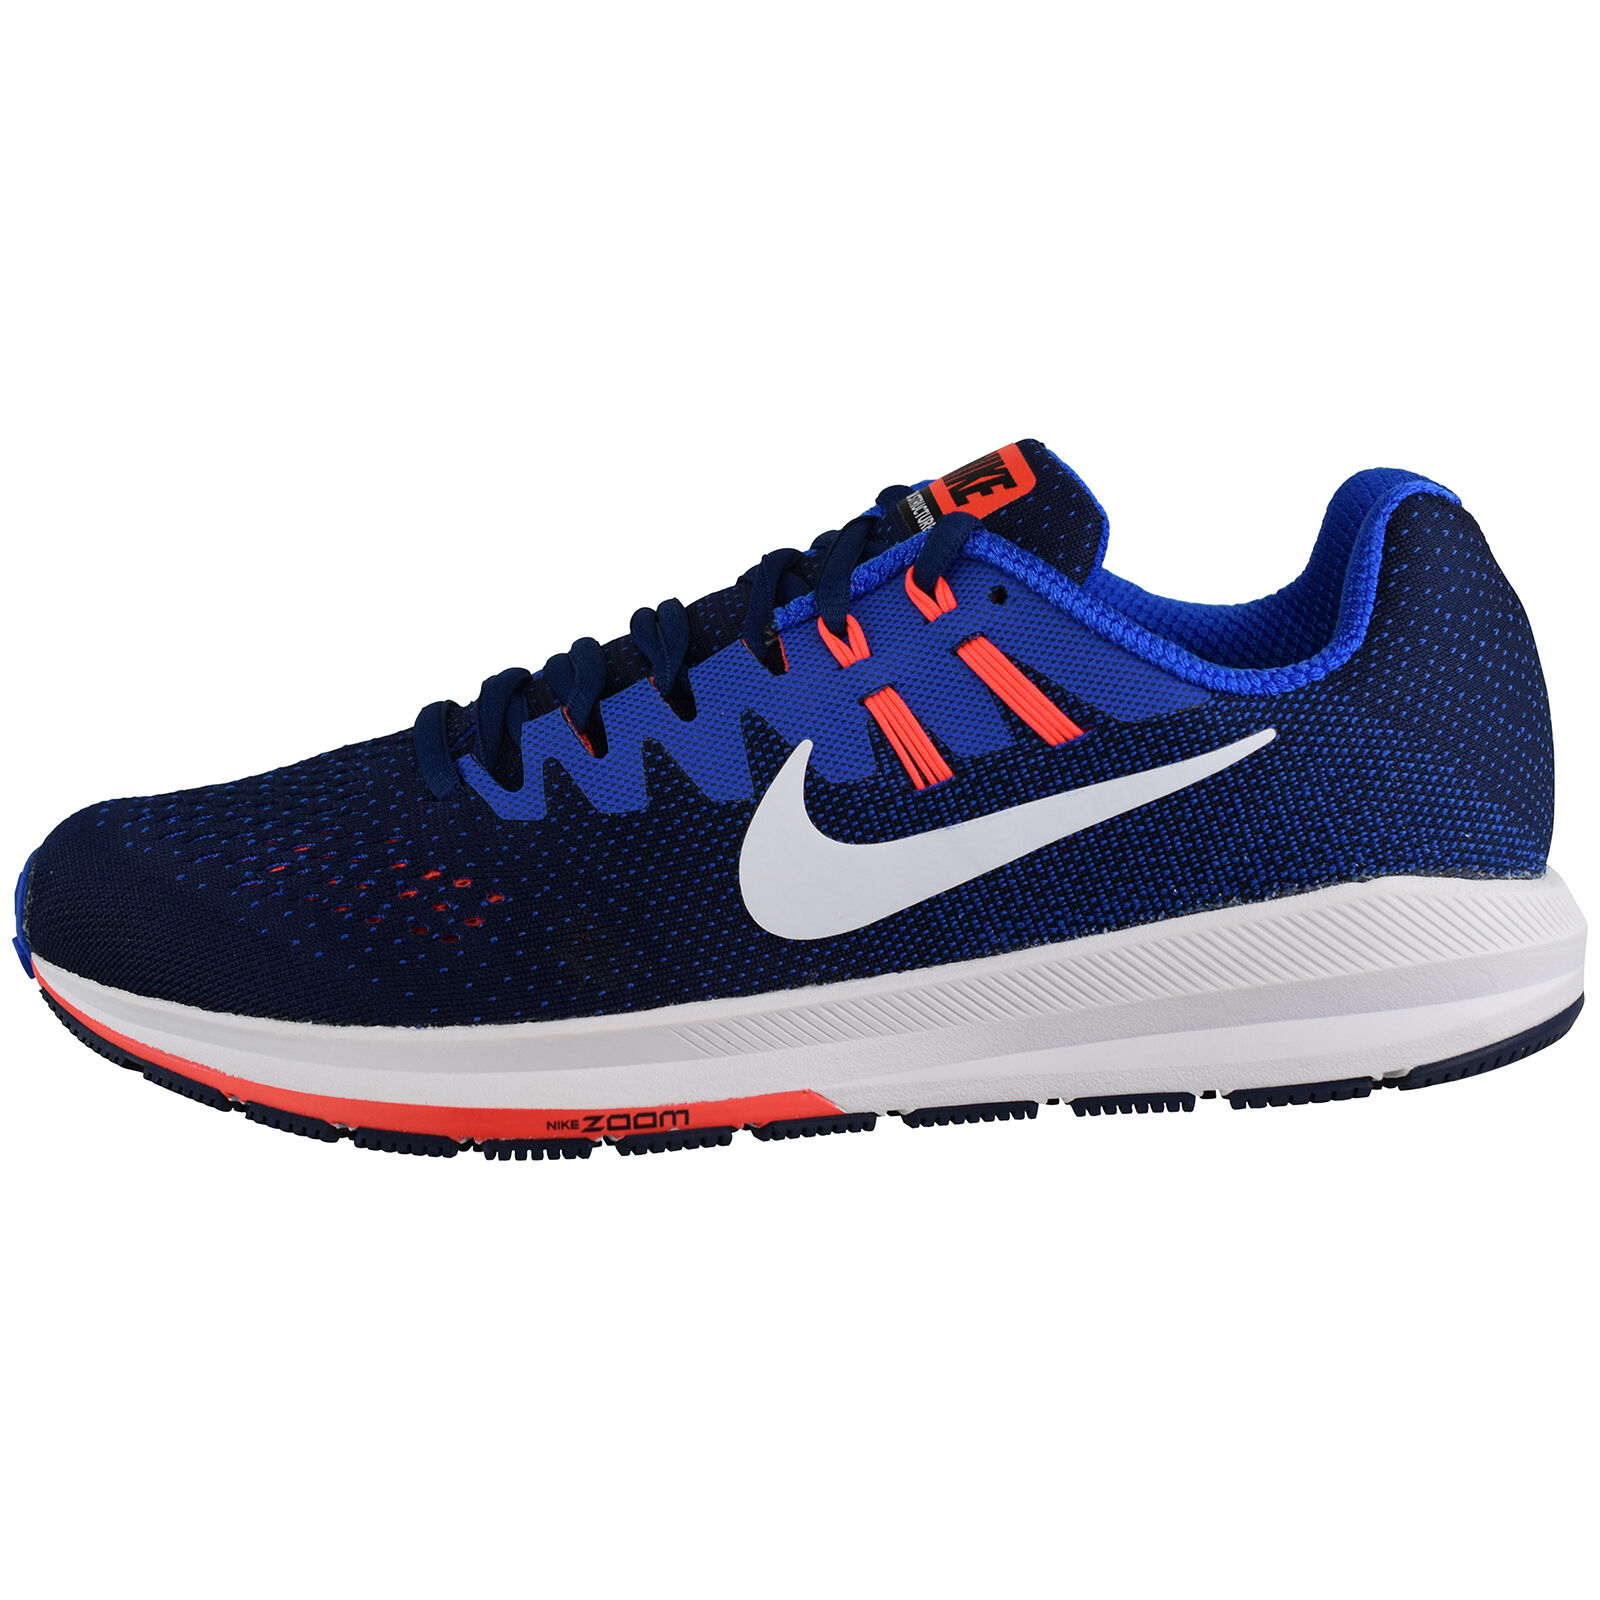 Nike Air Zoom Structure 20 849576-400 Jogging Running Shoes Casual Trainers